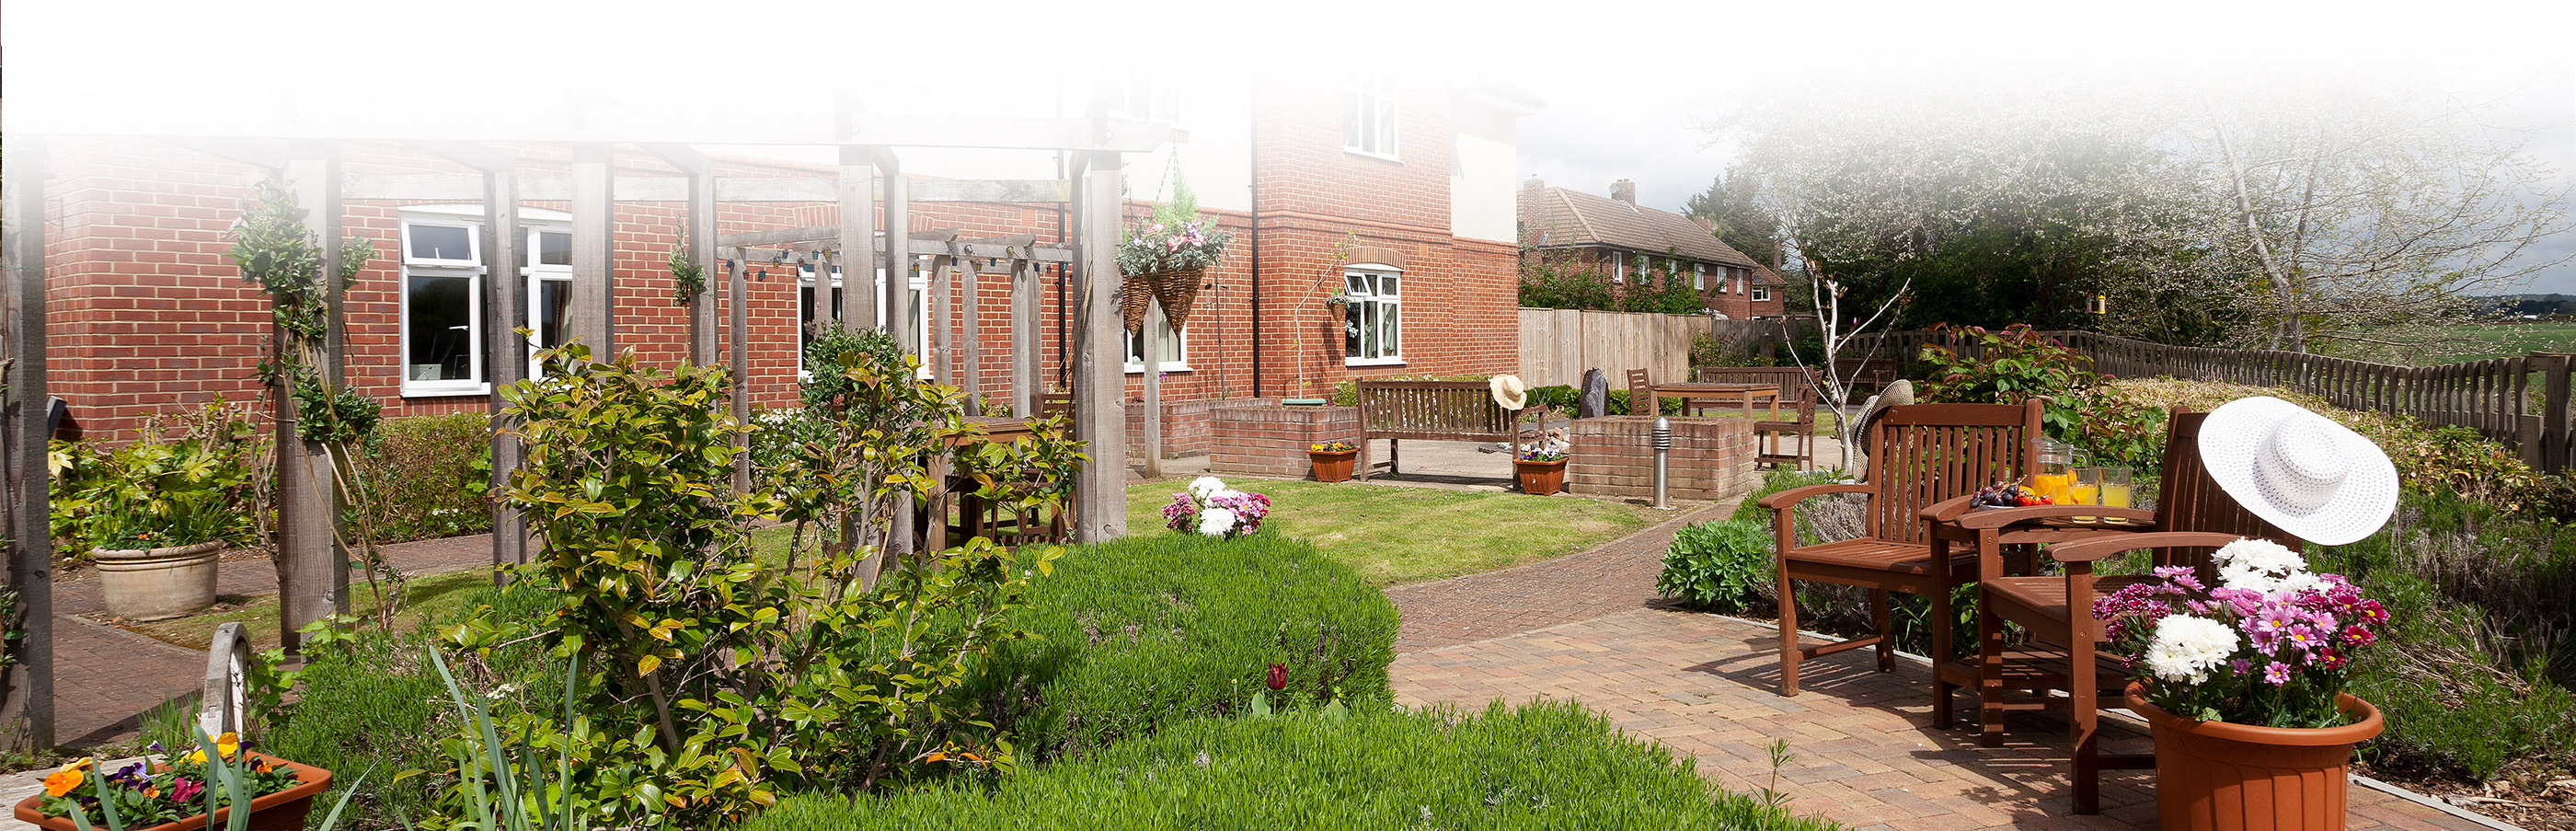 Outdoor plants and flowers at Stowford House Care Home Abingdon